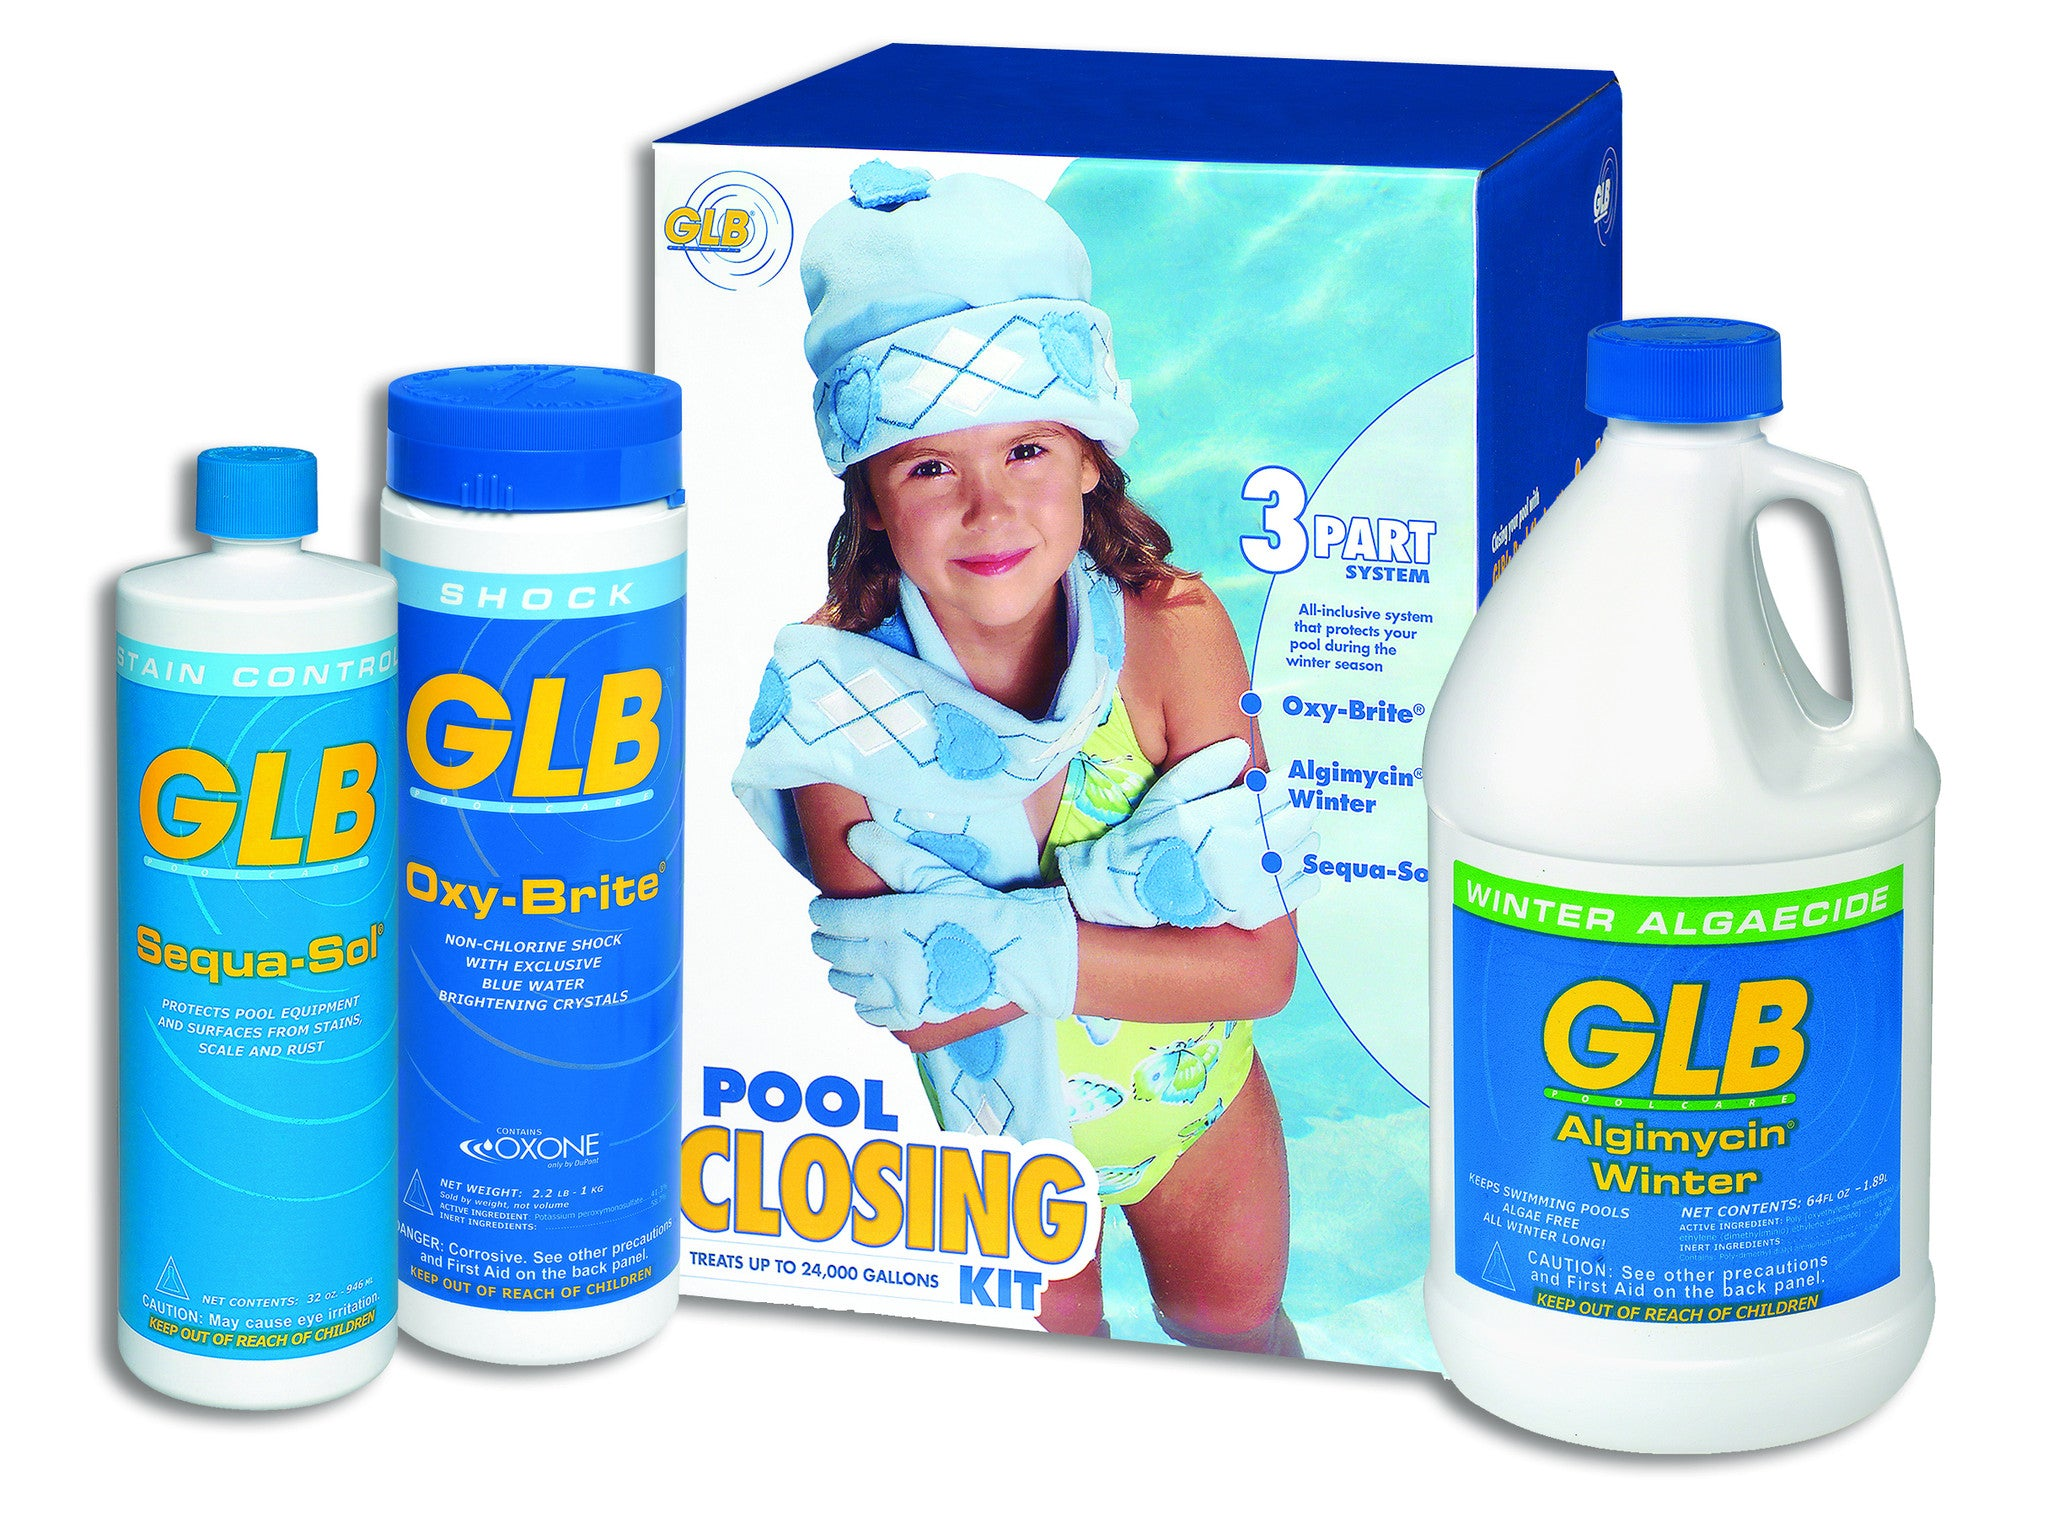 GLB Winter Swimming Pool Closing Kits